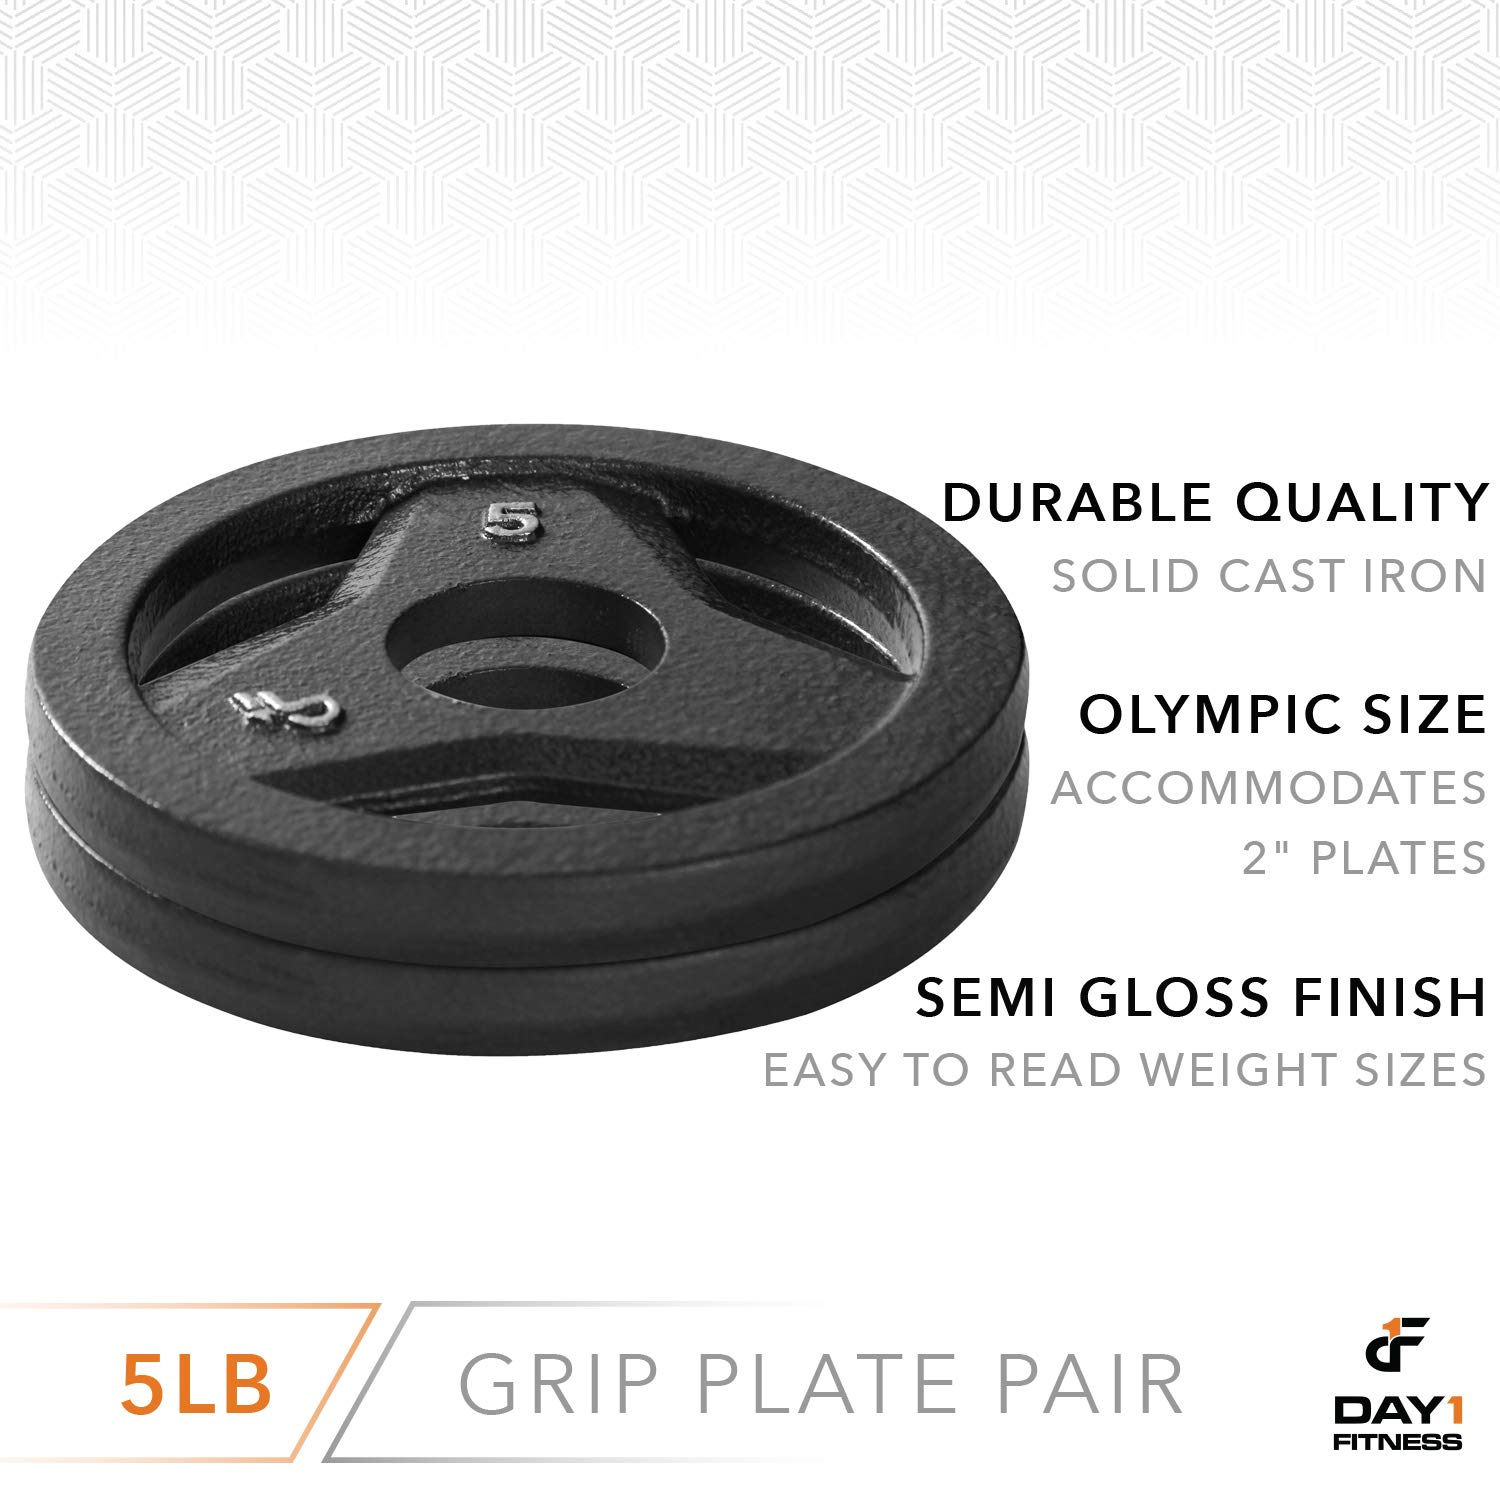 "Day 1 Fitness Cast Iron Olympic 2-Inch Grip Plate for Barbell, 5 Pound Set of 2 Plates Iron Grip Plates for Weightlifting, Crossfit - 2"" Weight Plate for Bodybuilding by Day 1 Fitness (Image #3)"